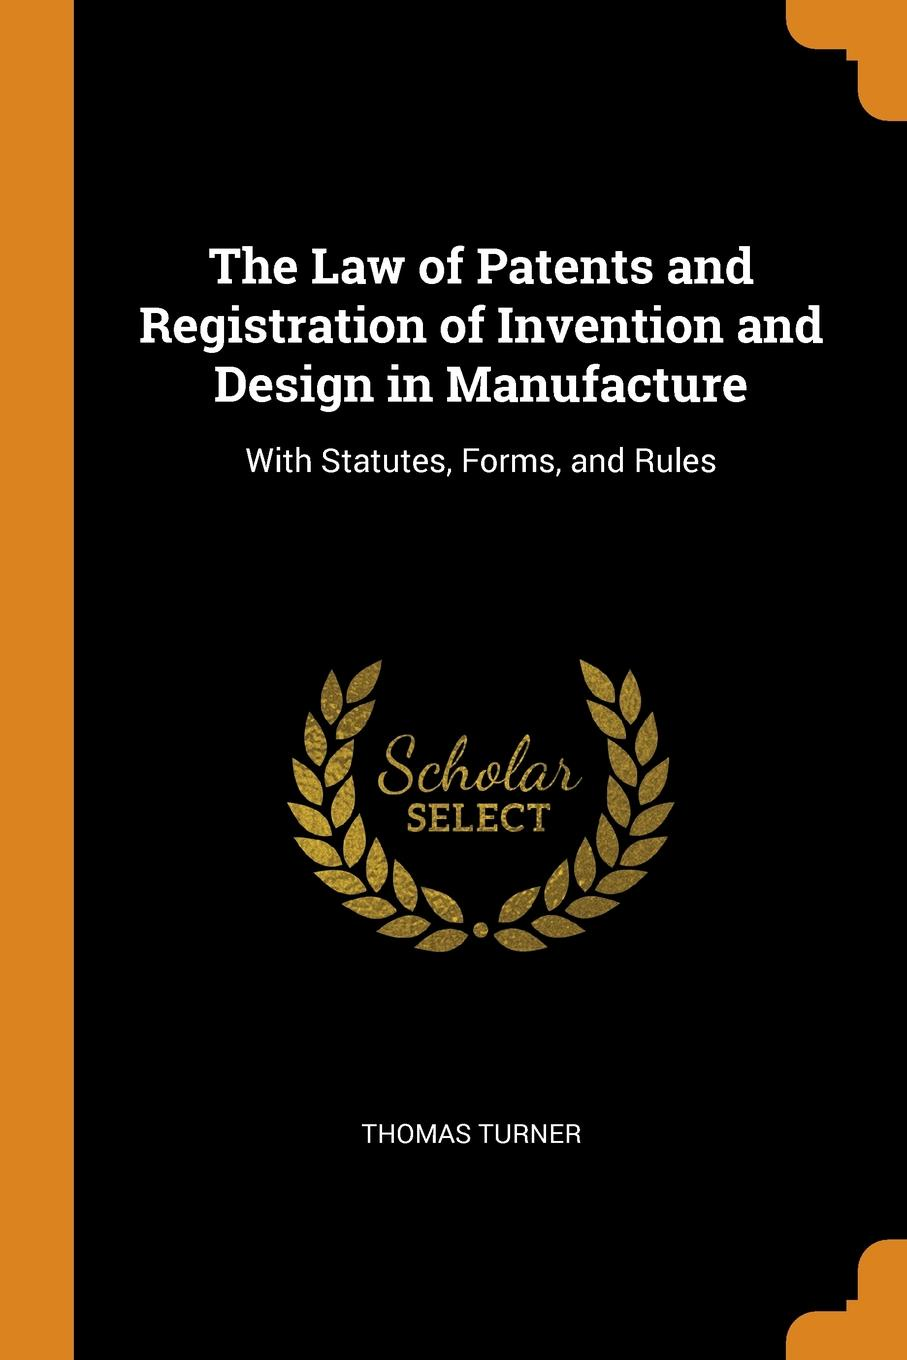 Thomas Turner. The Law of Patents and Registration of Invention and Design in Manufacture. With Statutes, Forms, and Rules